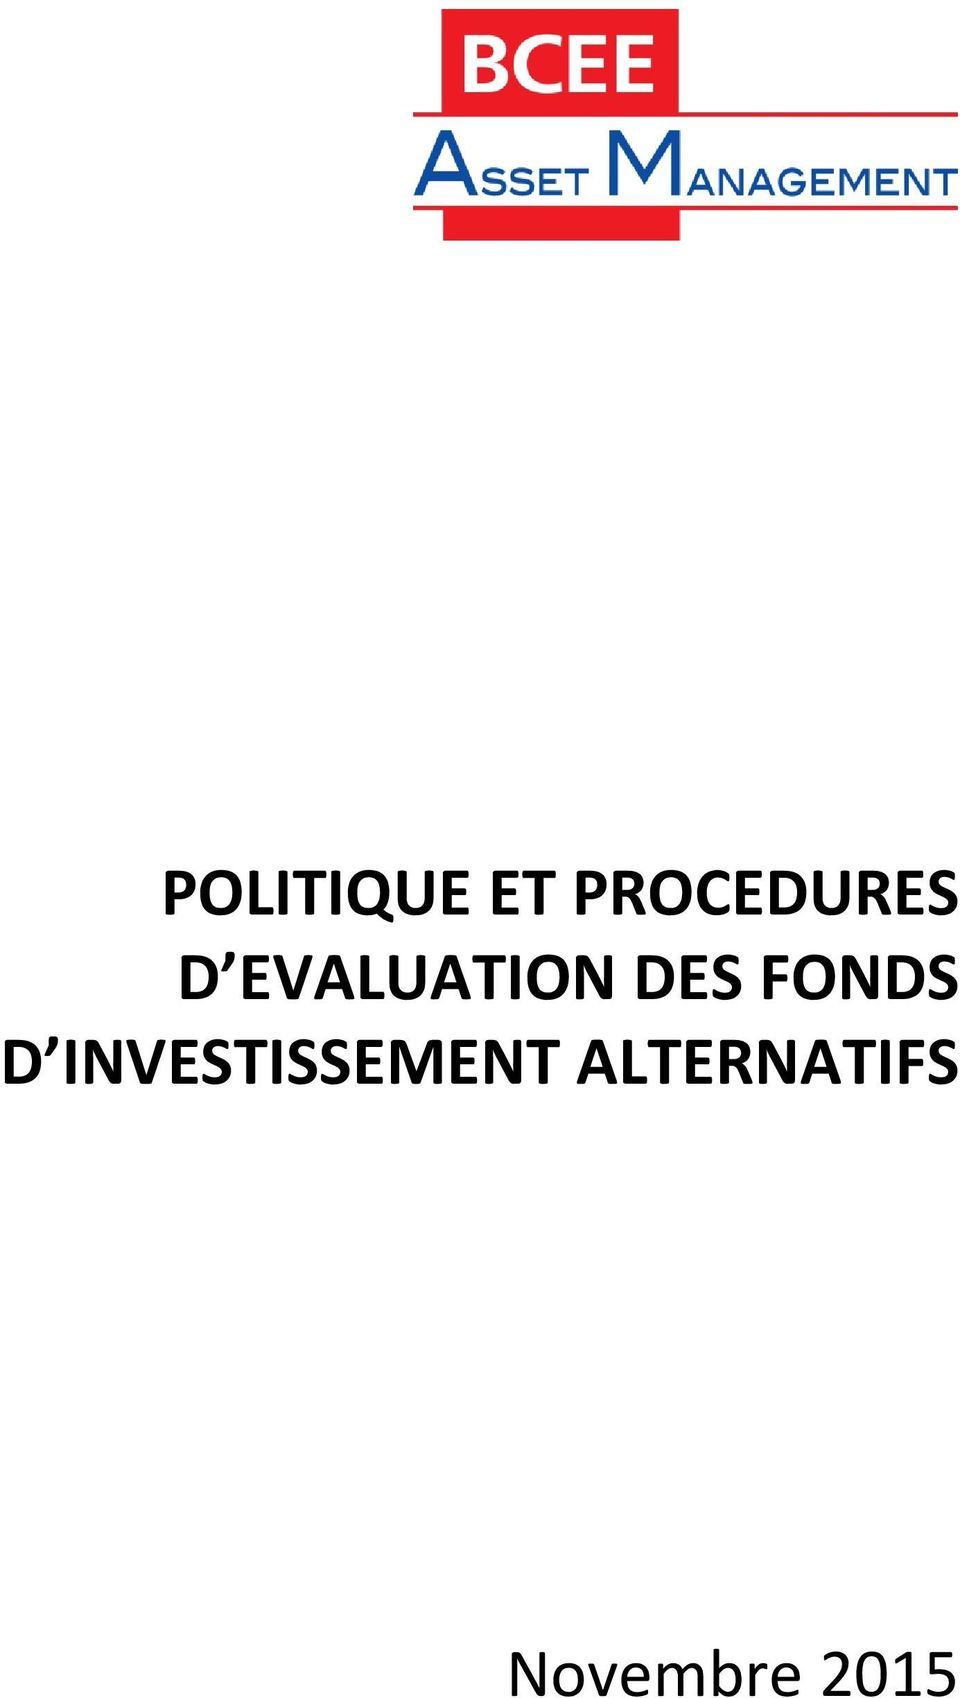 EVALUATION DES FONDS D